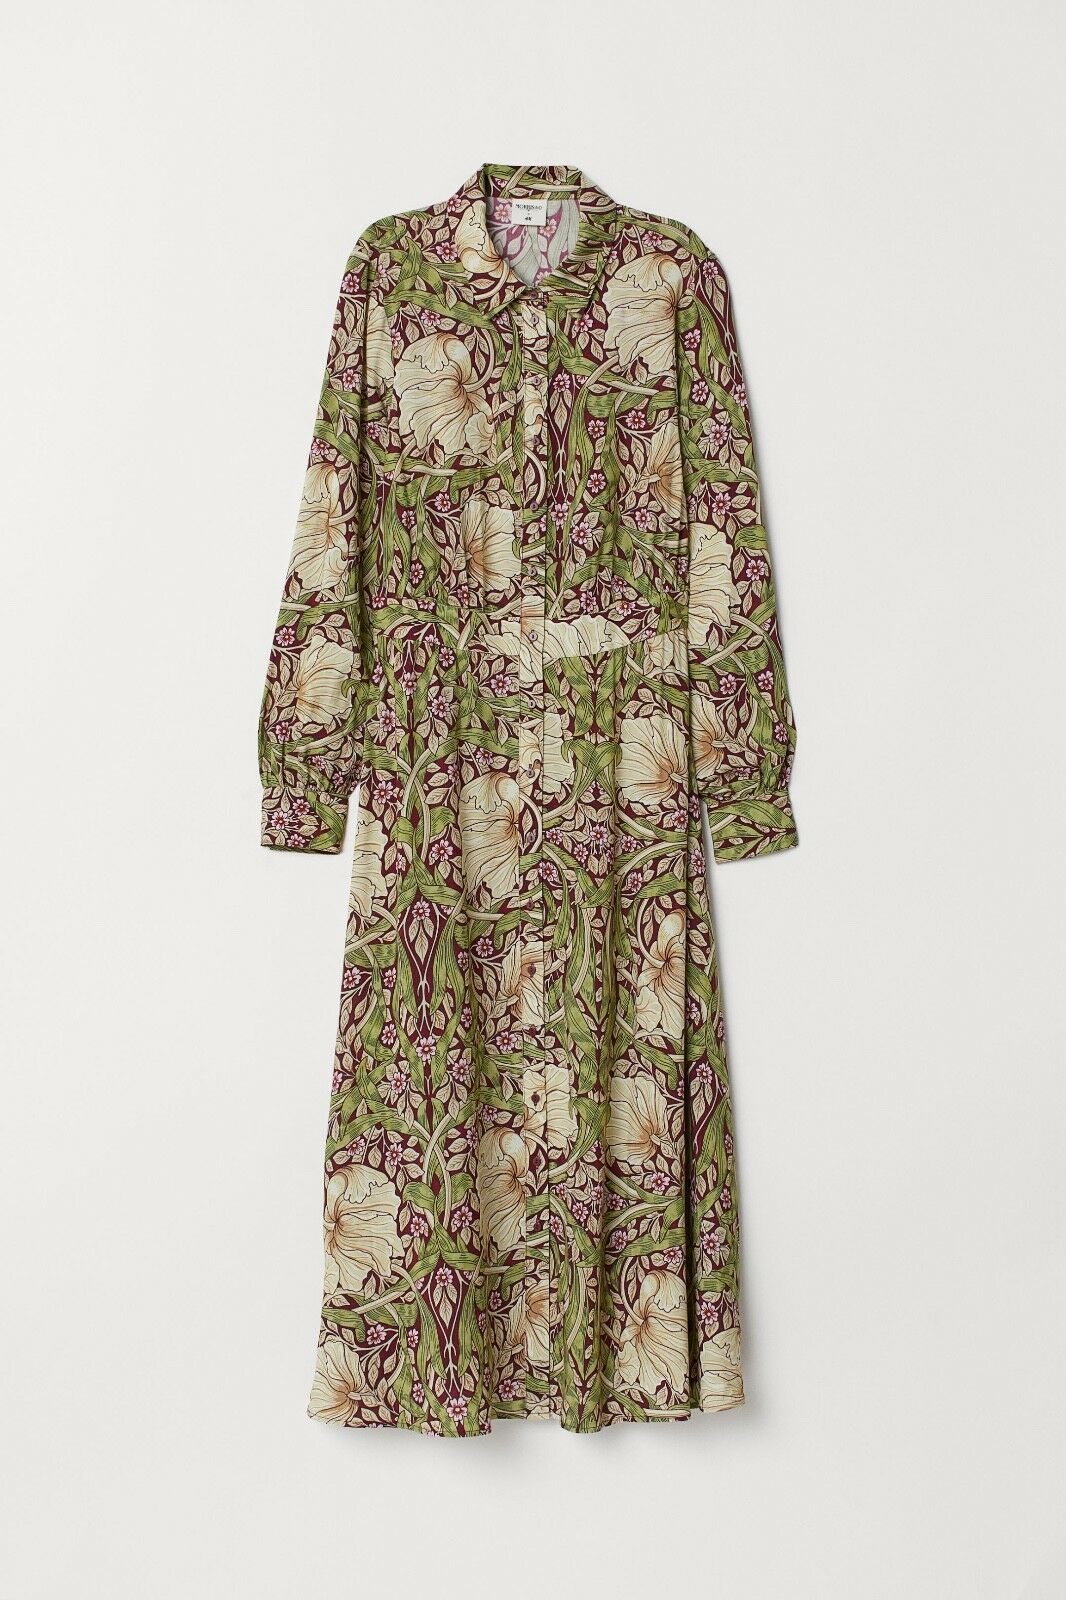 NWT - WILLIAM MORRIS & CO. x x x H&M BURGUNDY GREEN FLORAL MIDI SHIRT DRESS, Size 4 5fa718